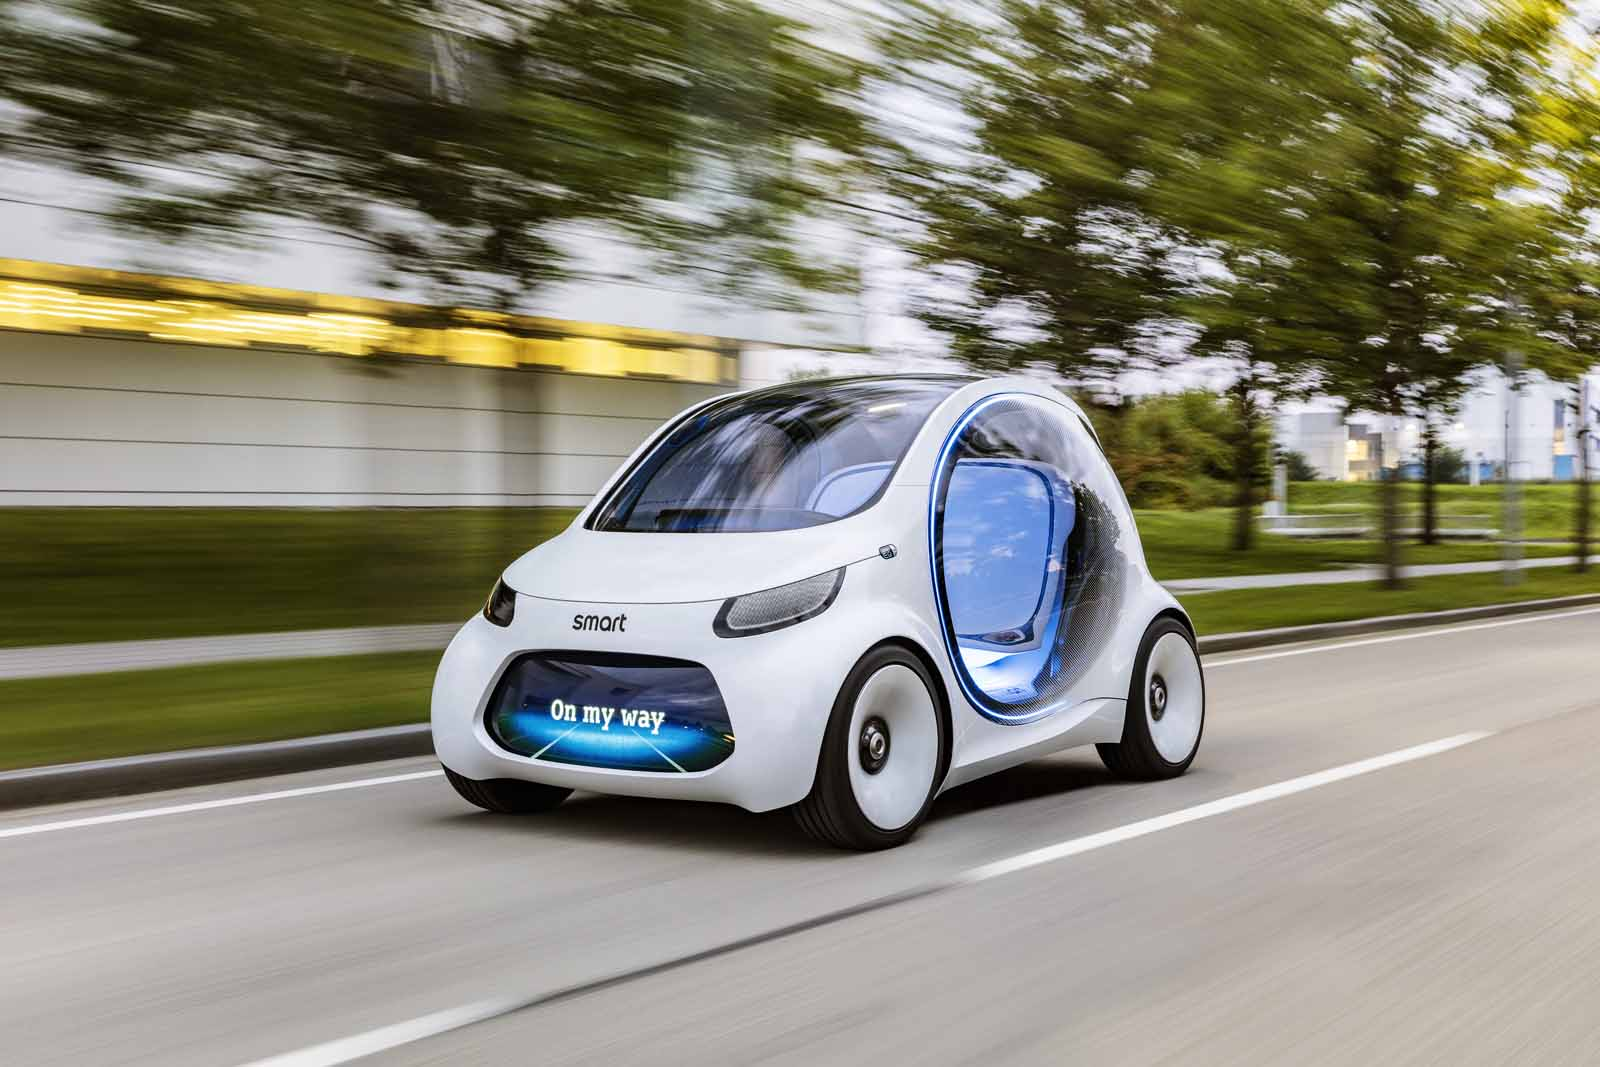 Smart Vision EQ Fortwo unveiled